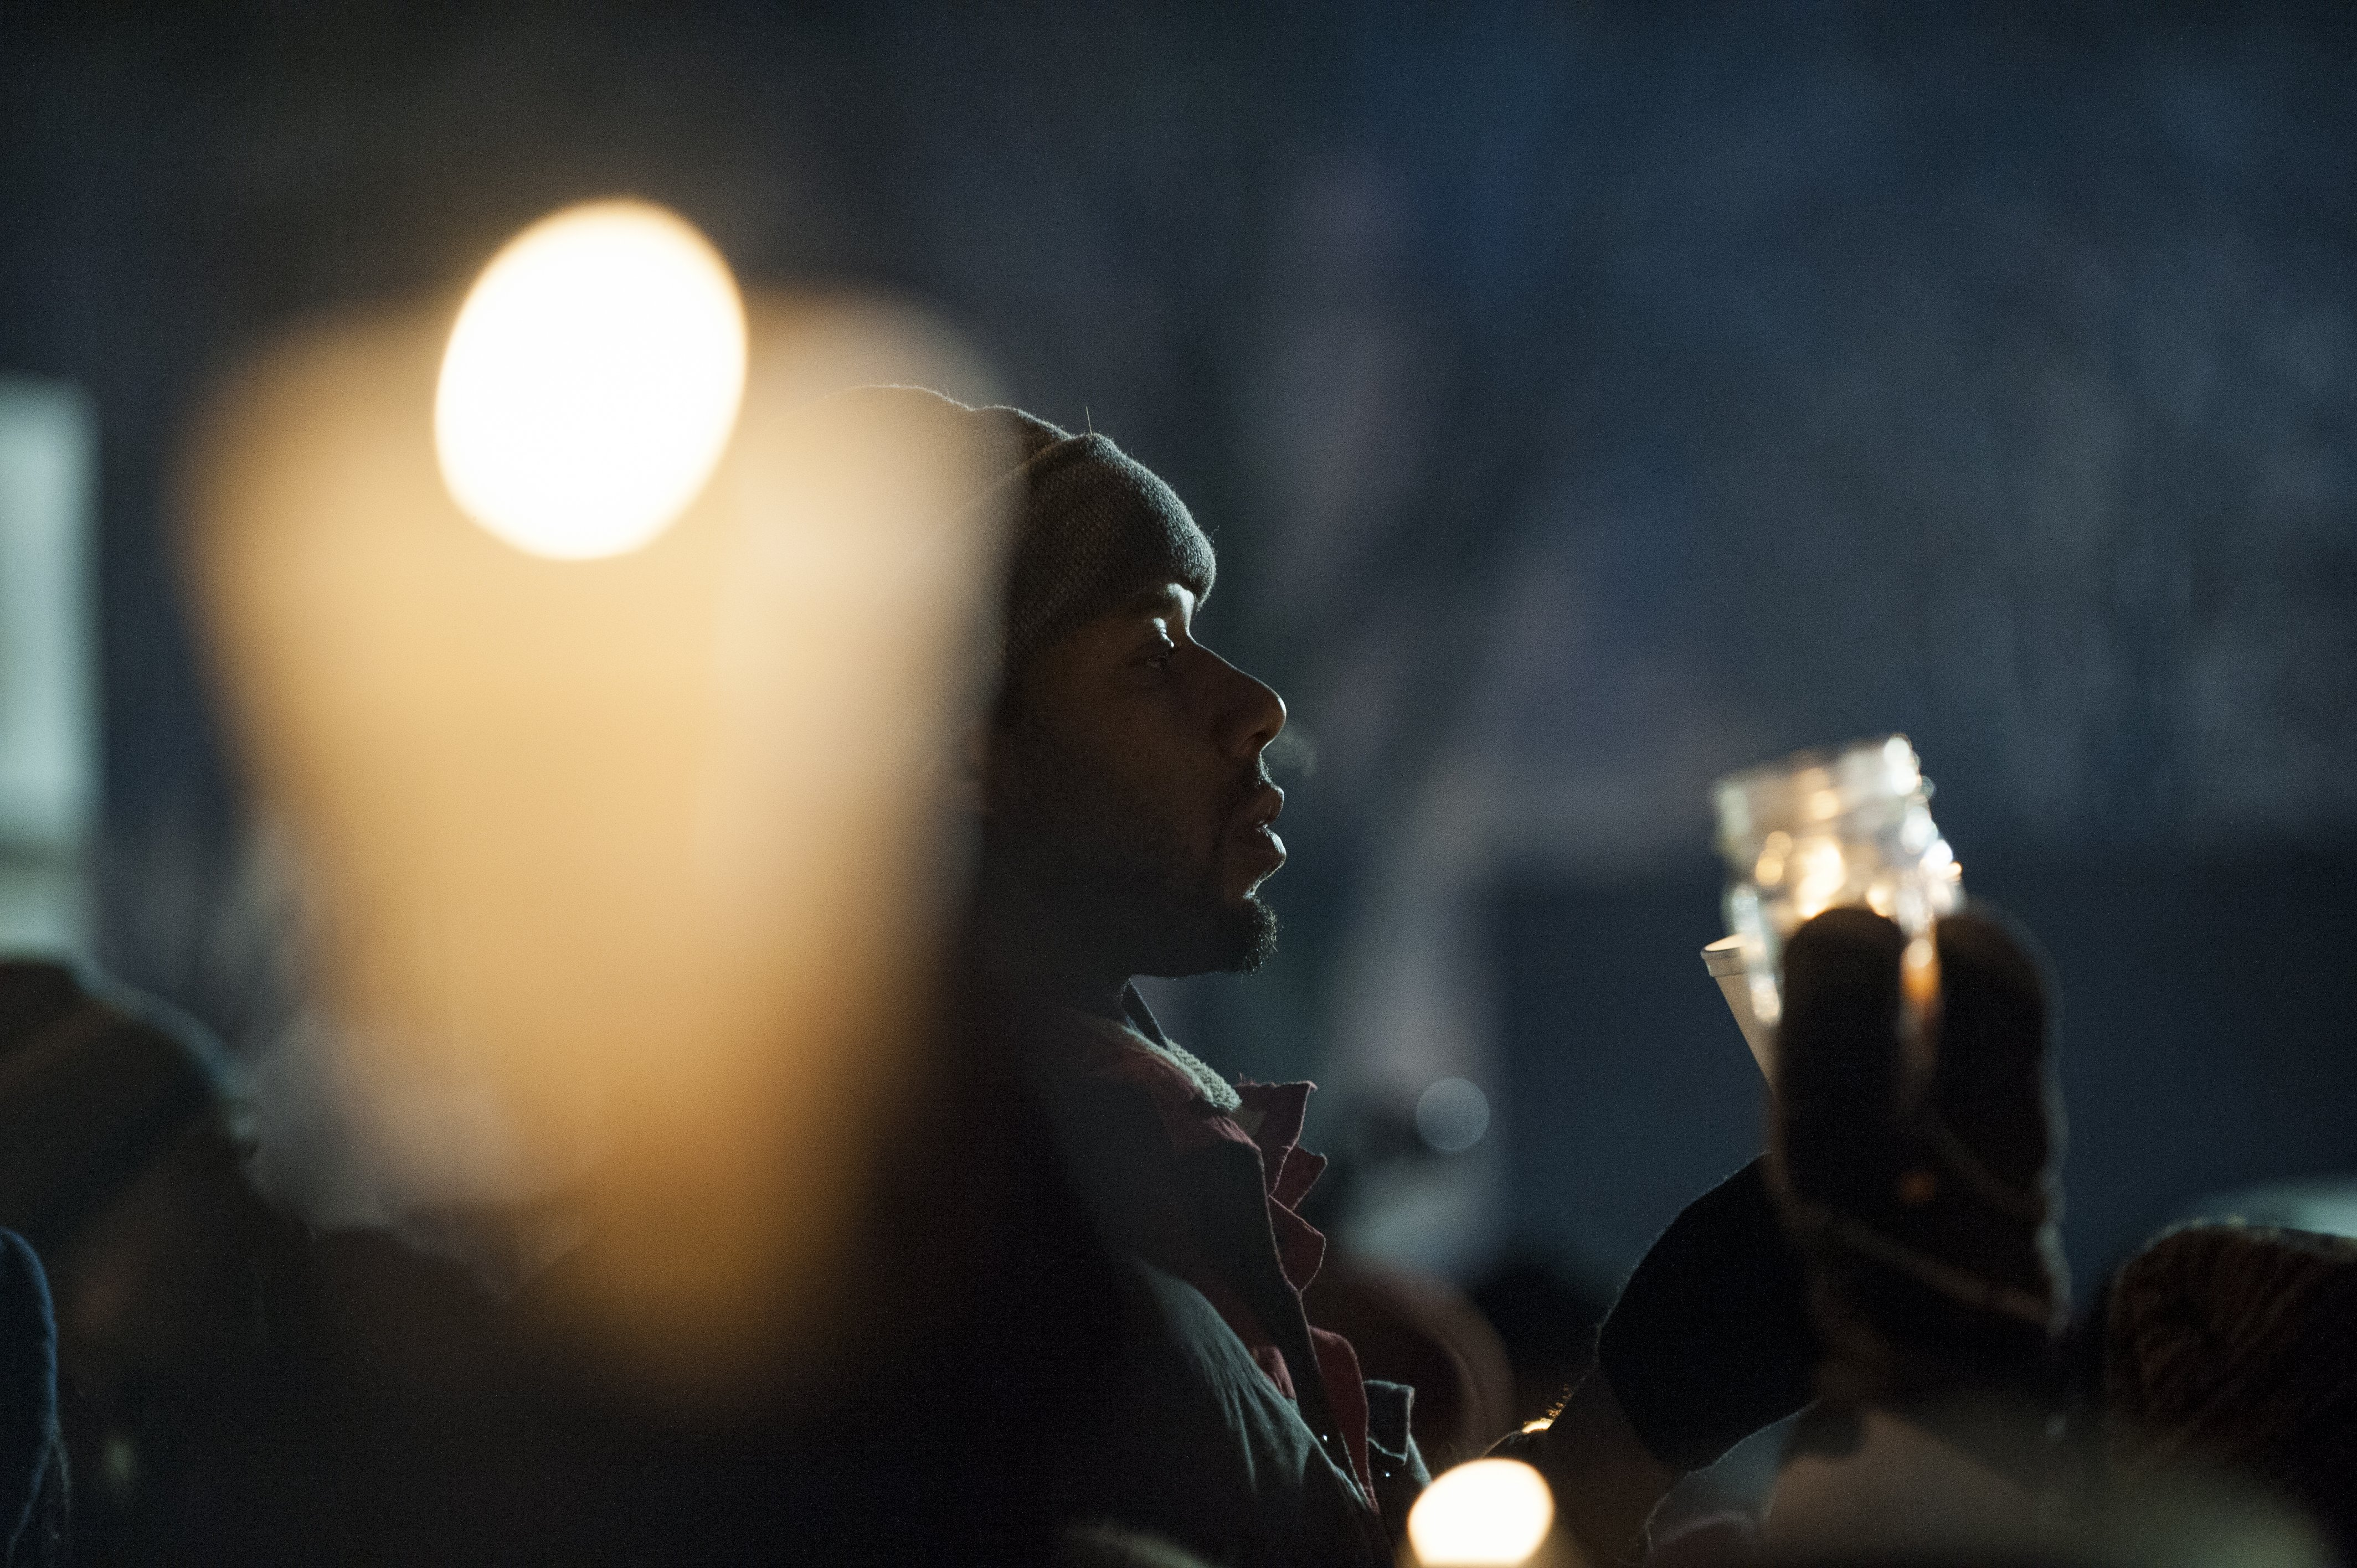 Protestors, activists, and community members listen to speeches at a candlelight vigil held for Jamar Clark outside the 4th police precinct  in Minneapolis on Nov. 20, 2015.